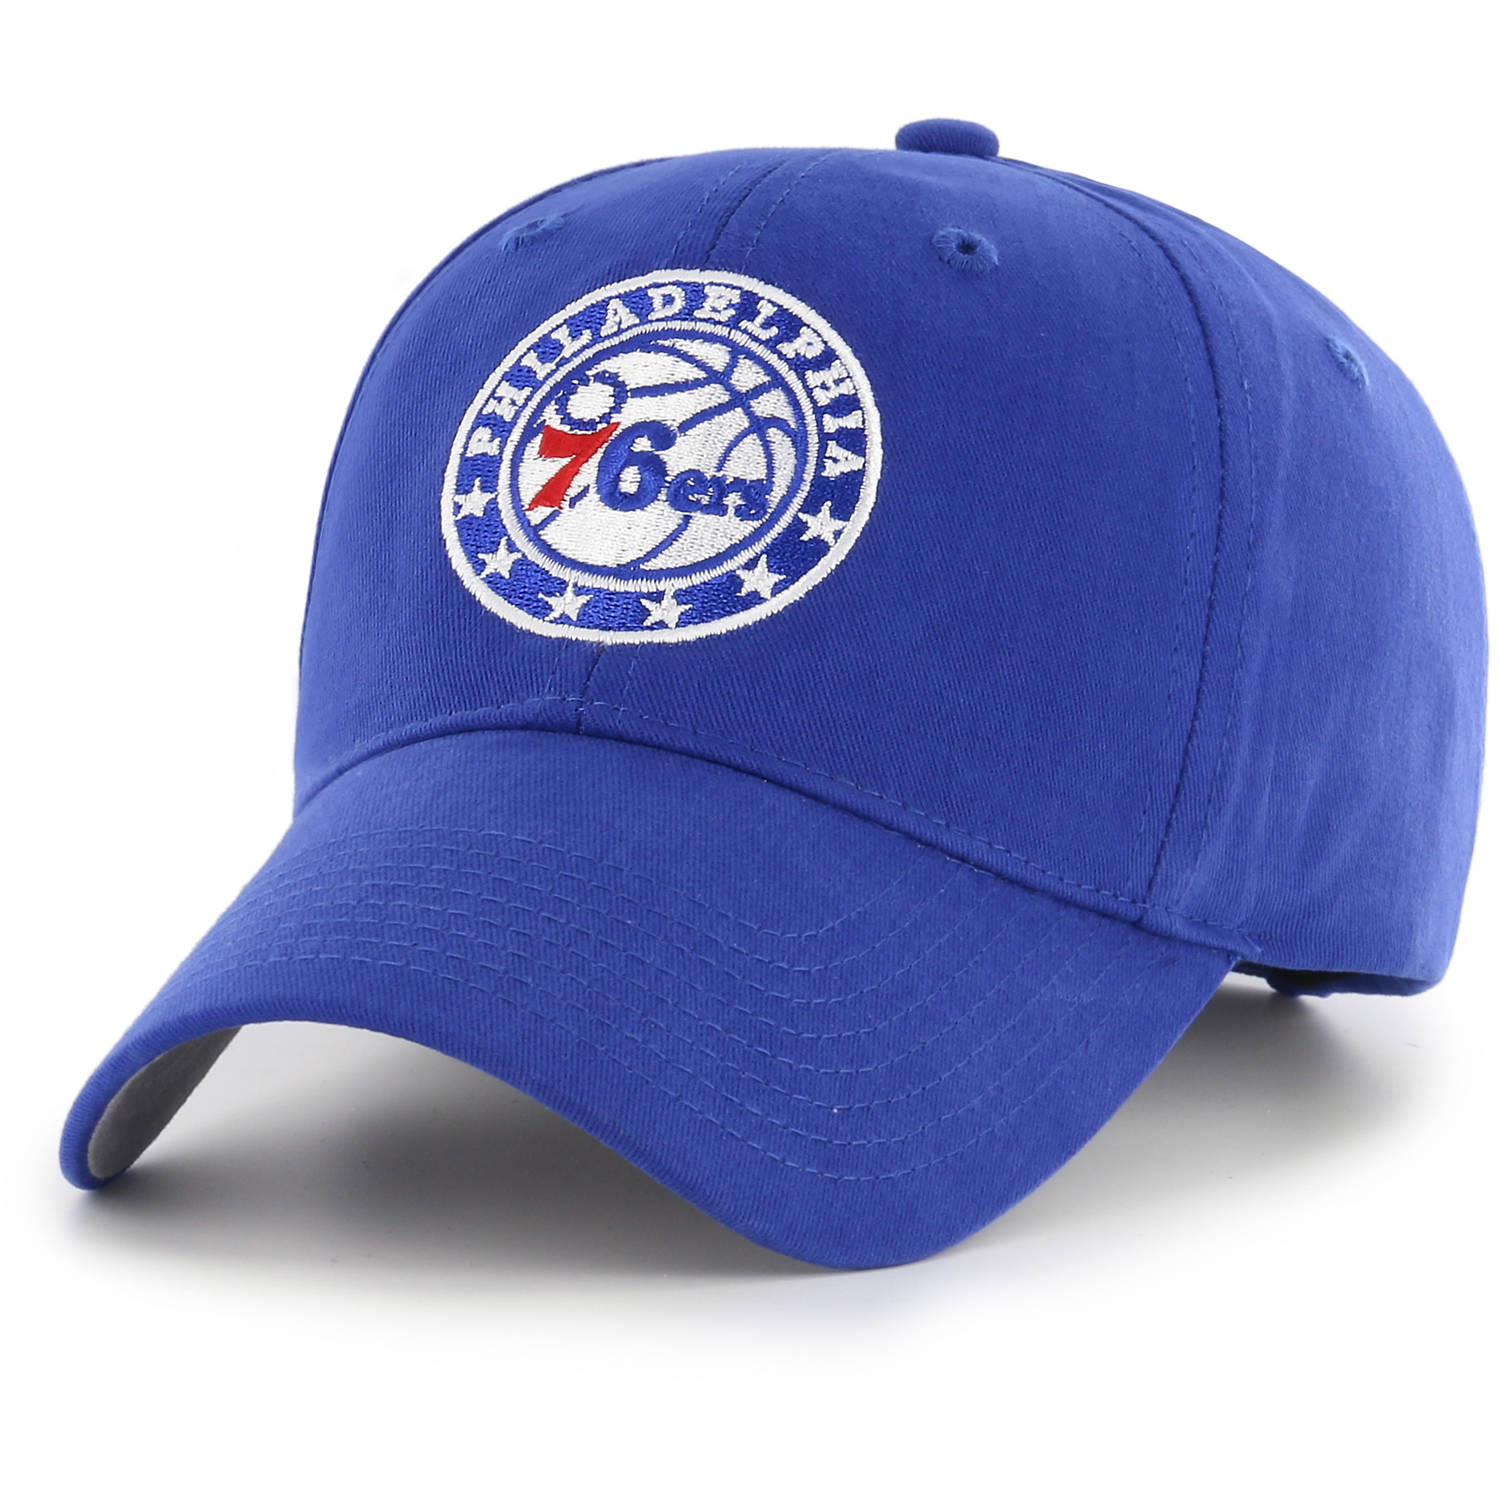 NBA Philadelphia 76ers Basic Cap/Hat - Fan Favorite